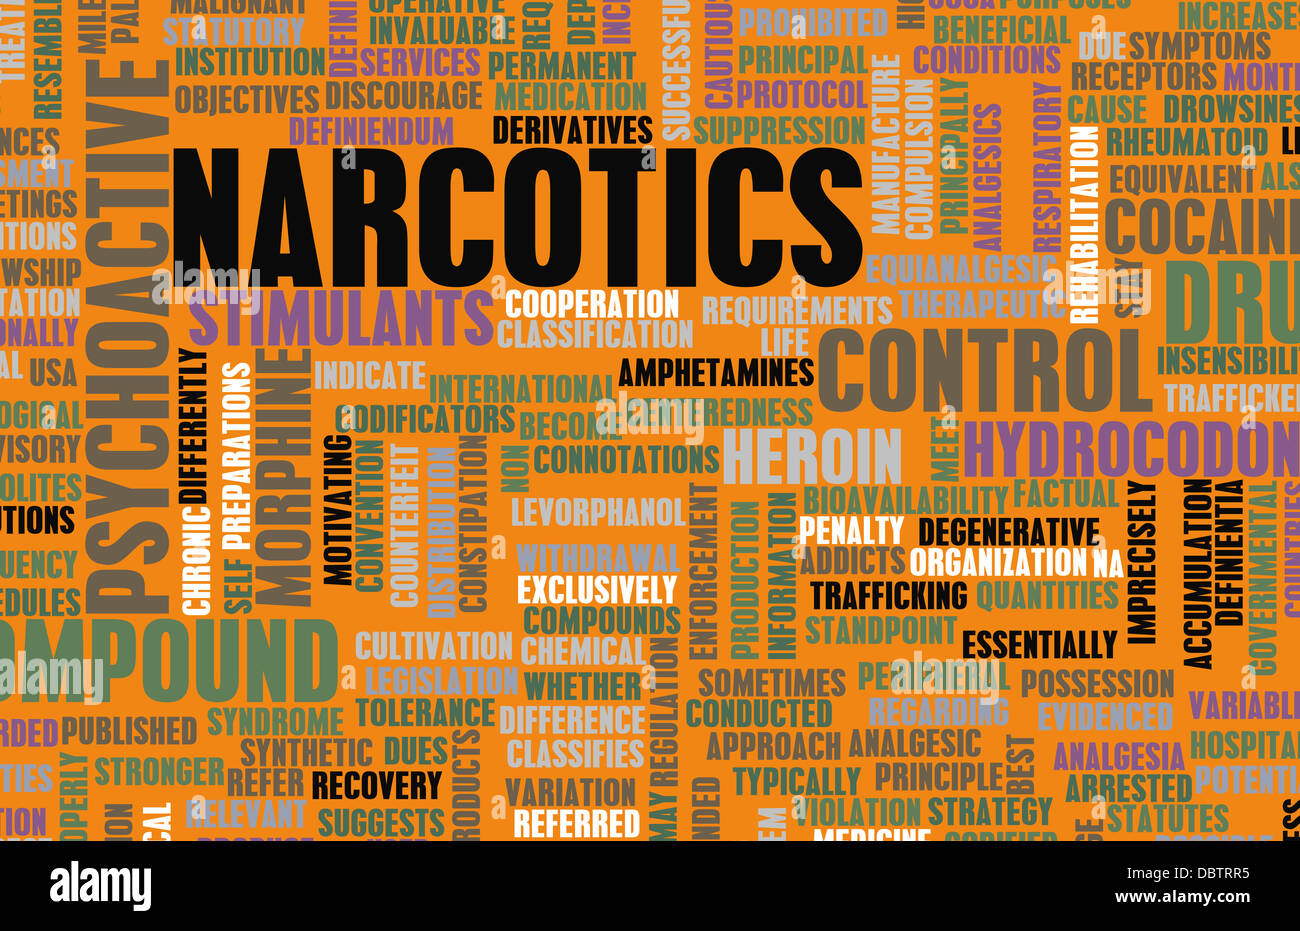 Image result for narcotics graphics